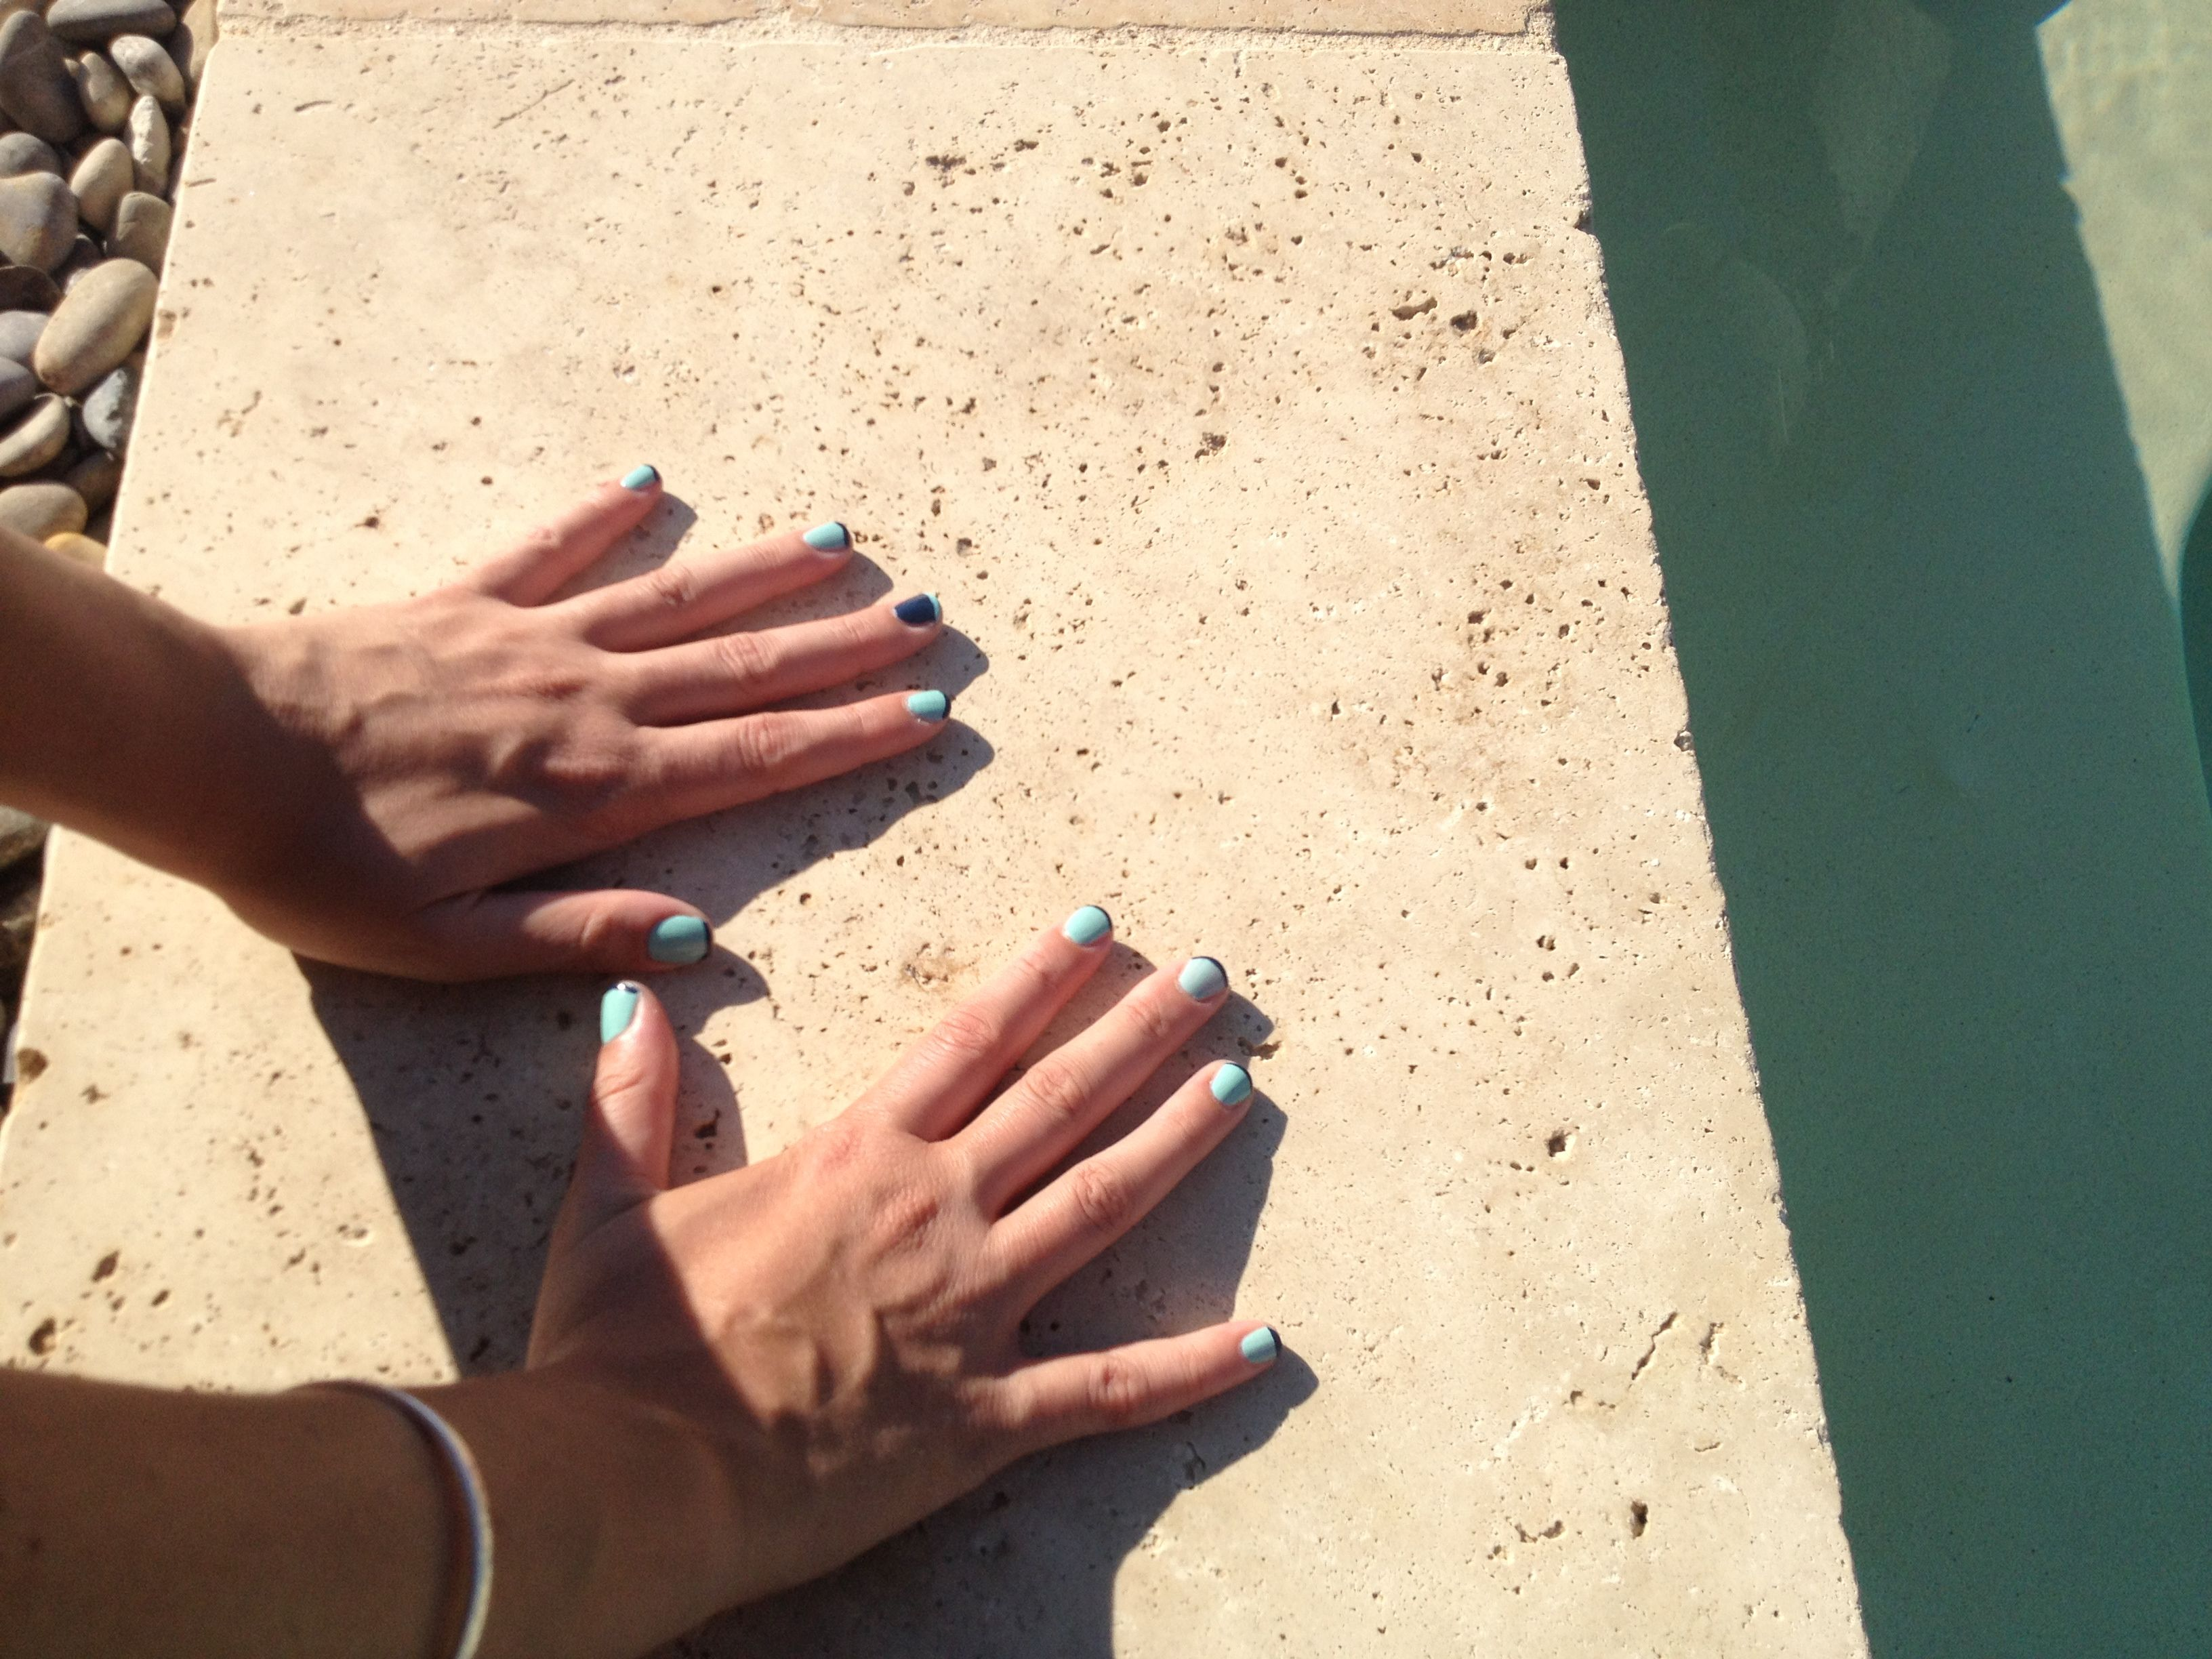 Swimming pool nails by Amelie. A